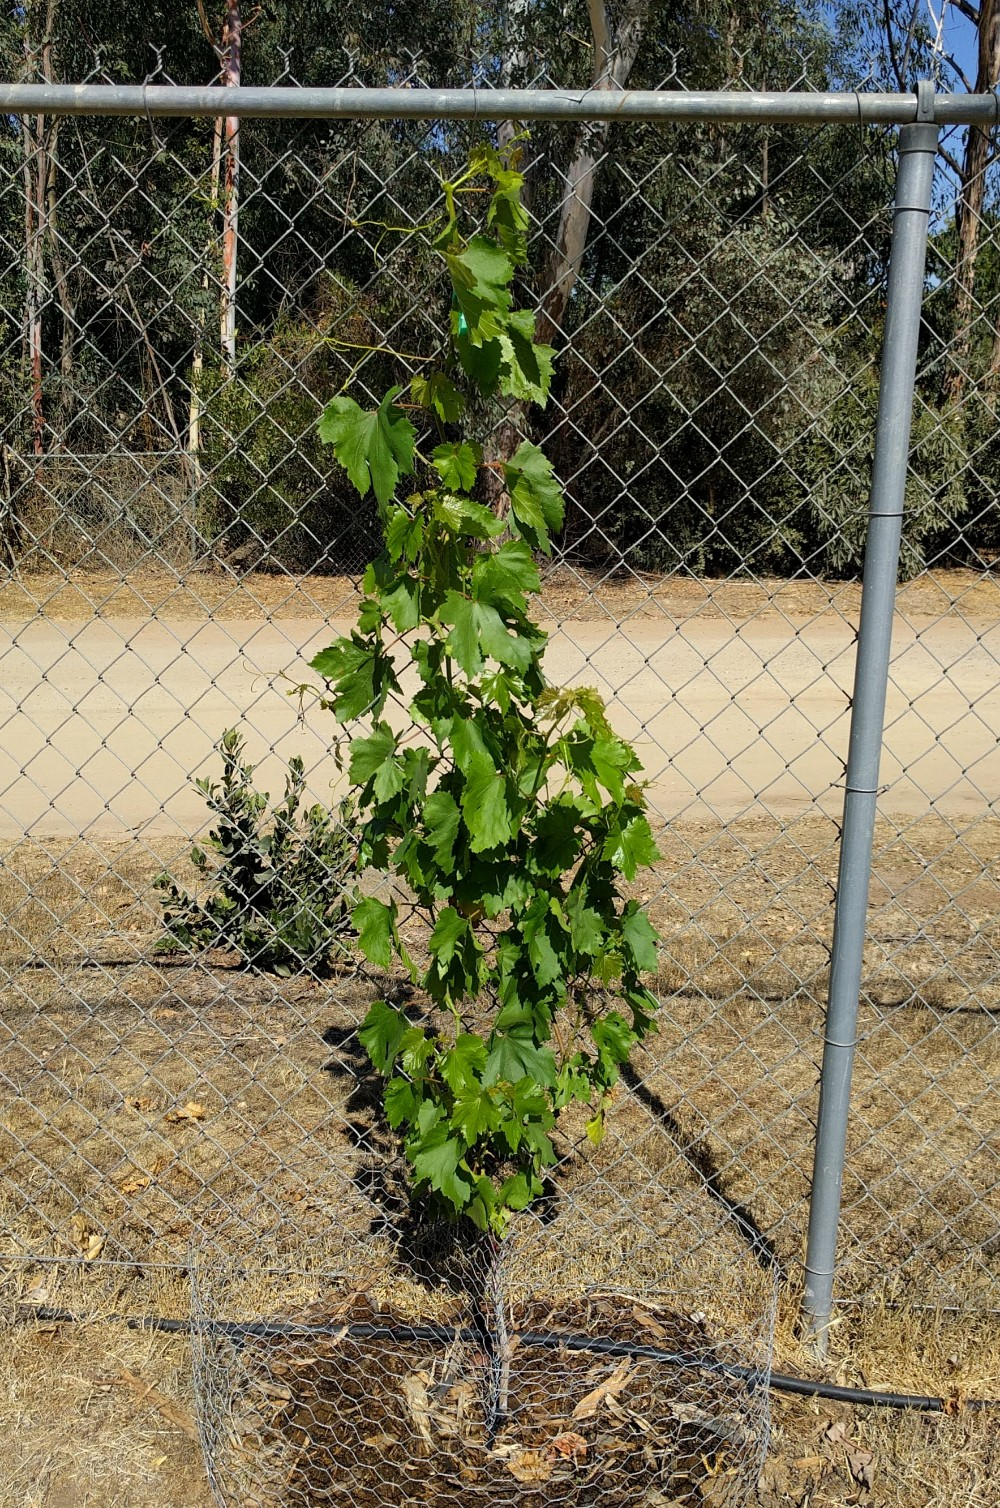 How To Grow Grapes On A Chain Link Fence Greg Alder S